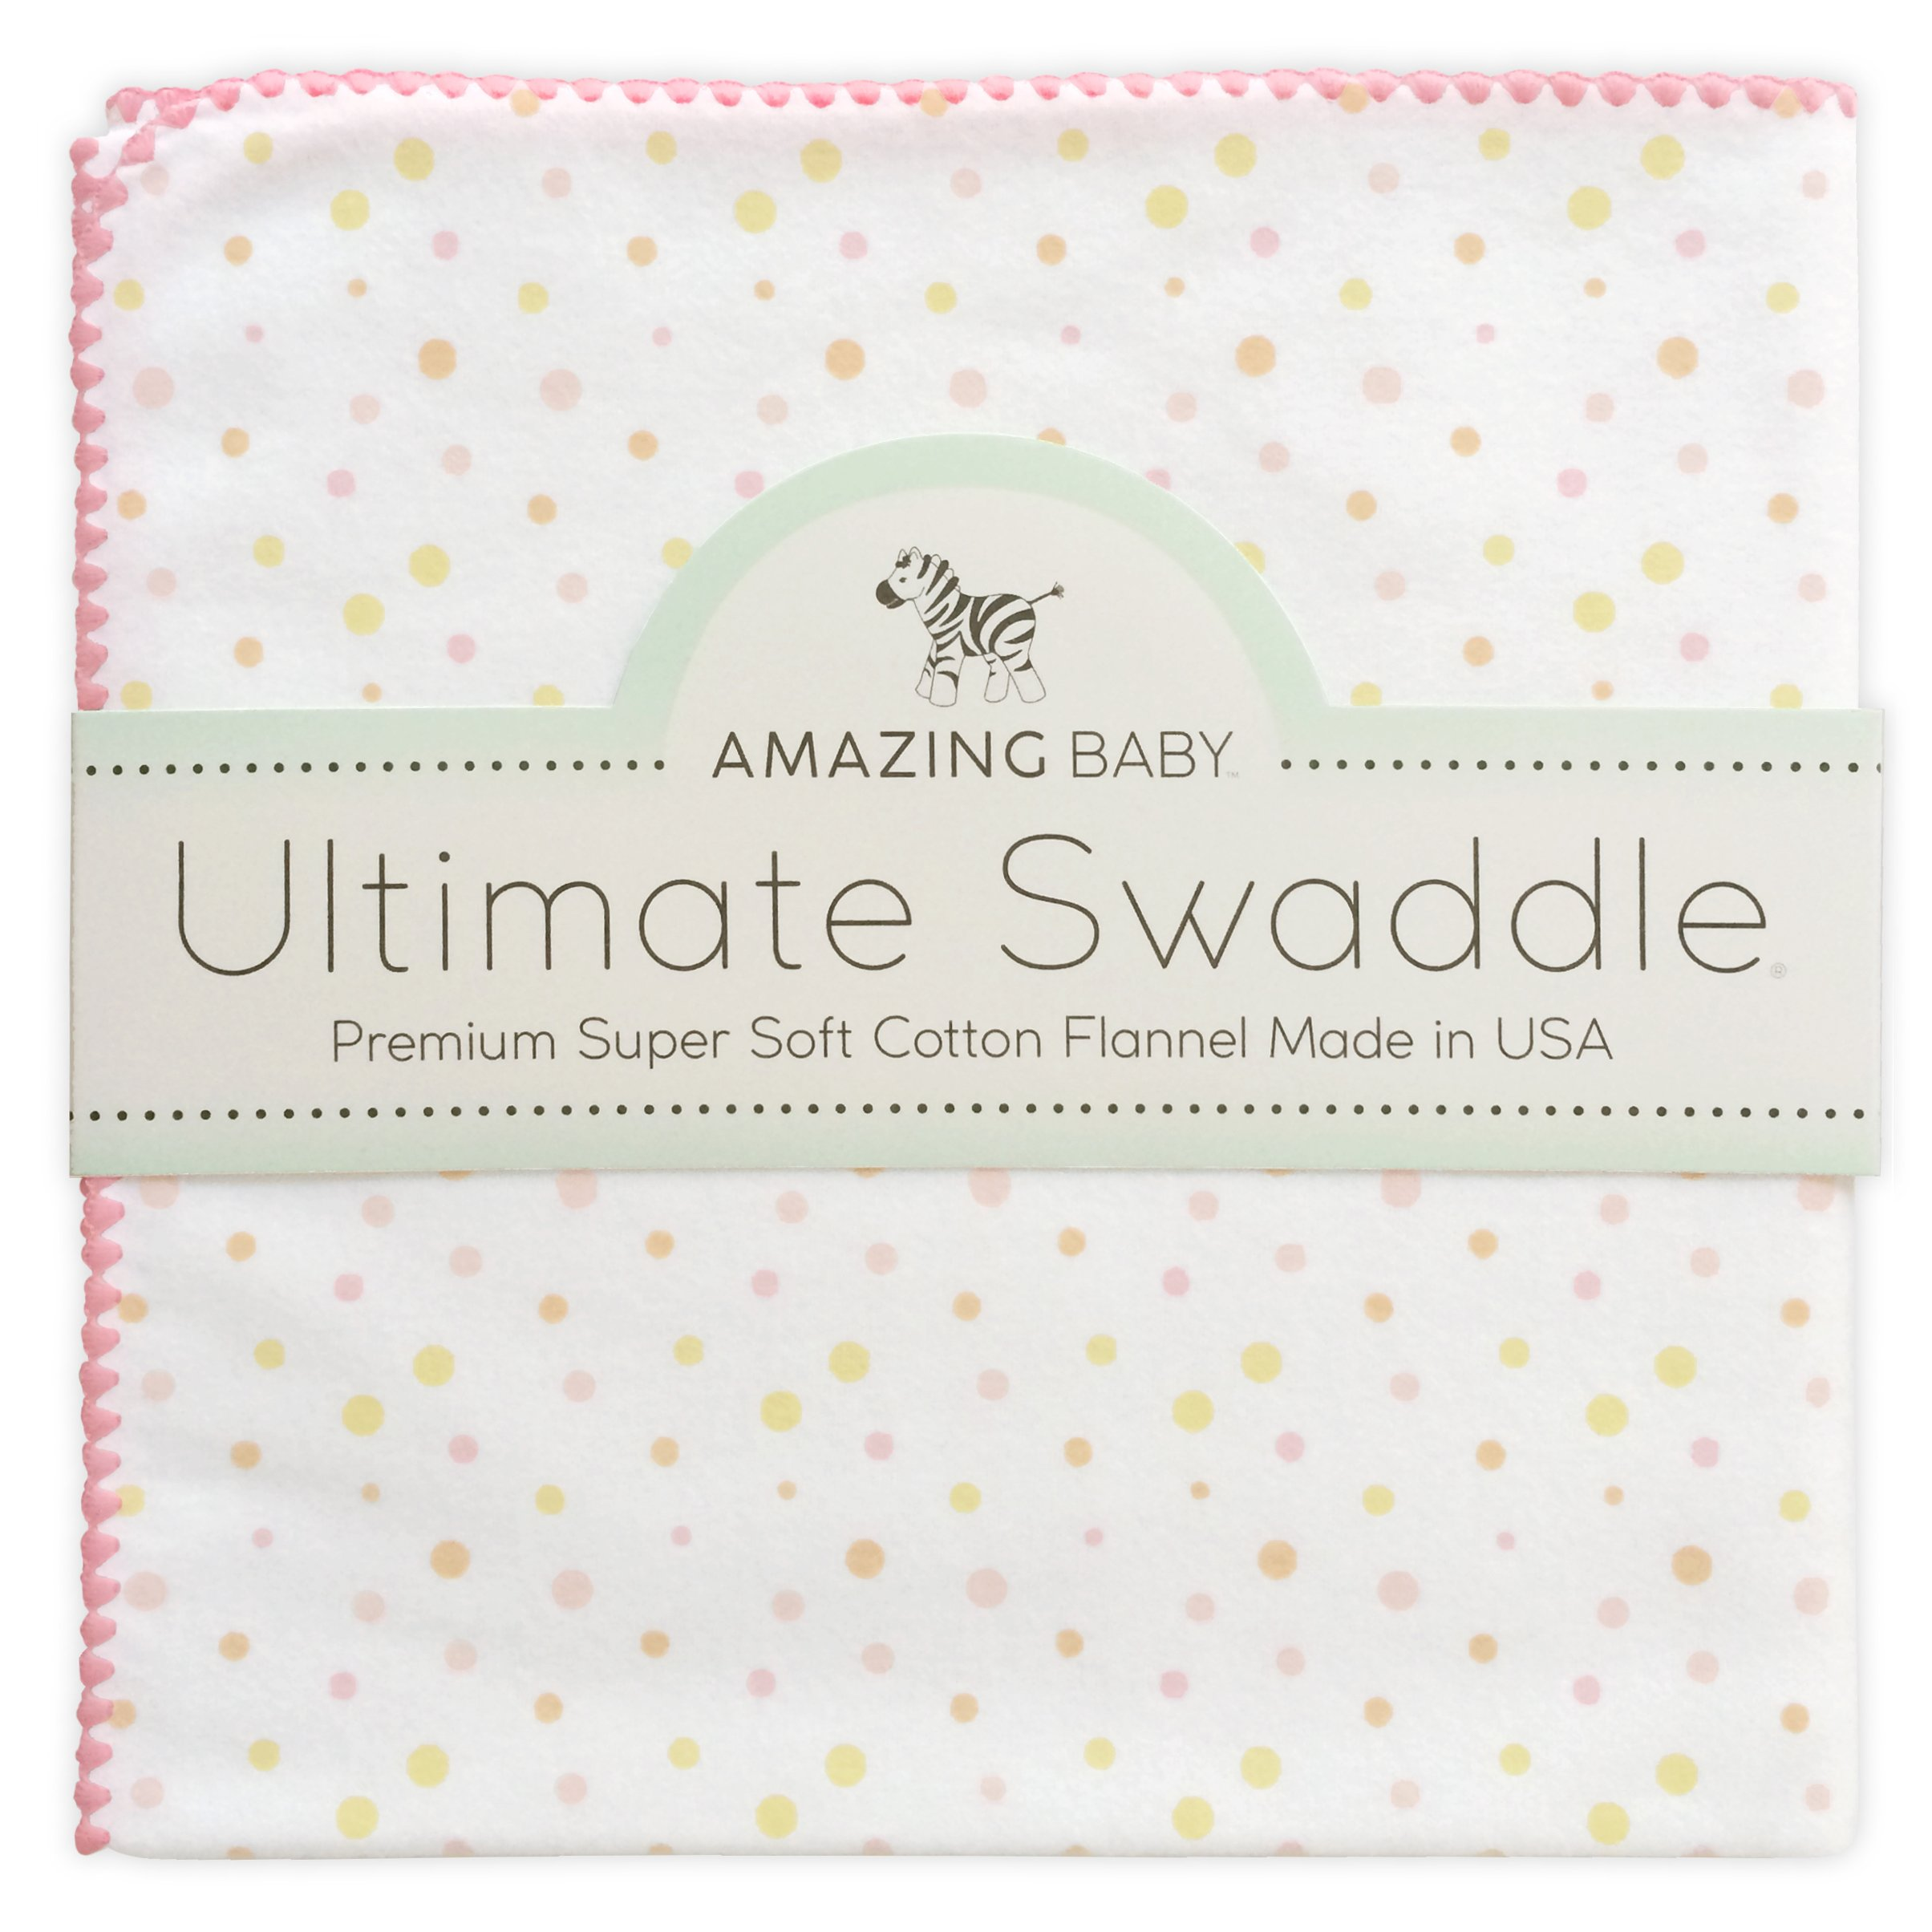 Amazing Baby Ultimate Swaddle, X-Large Receiving Blanket, Made in USA, Premium Cotton Flannel, Playful Dots, Multi Pink (Mom's Choice Award Winner)